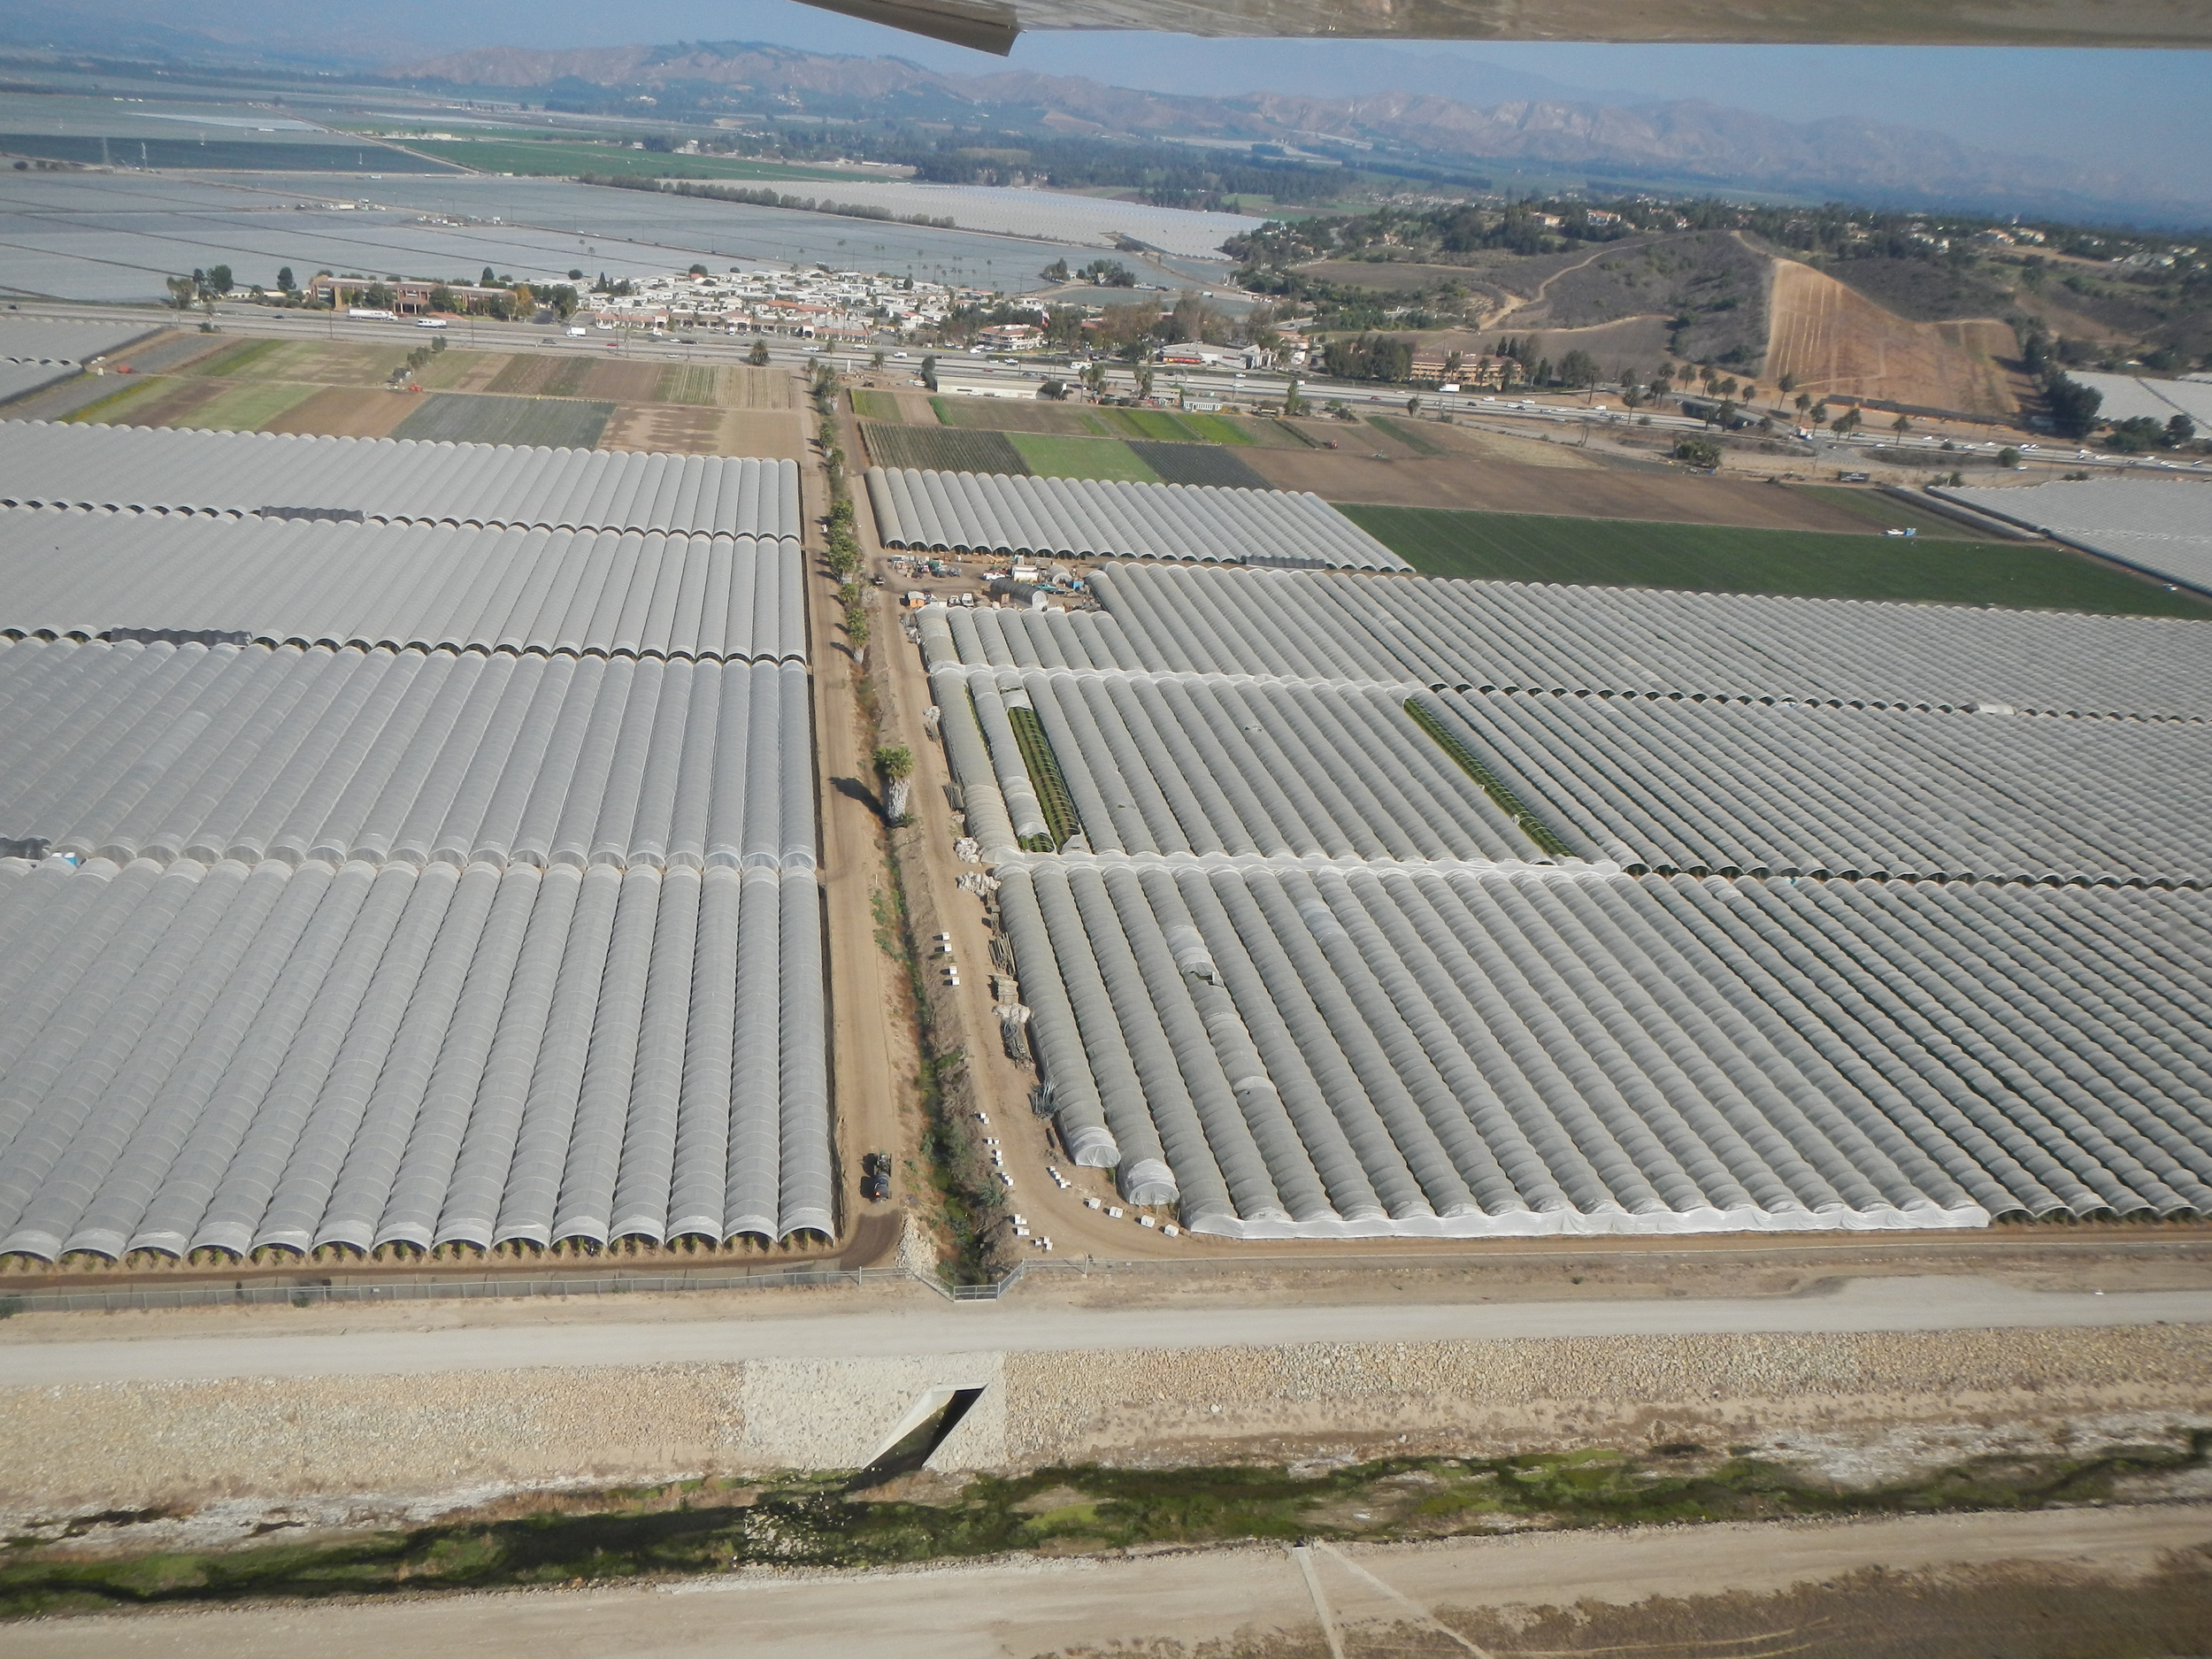 A portion of the many Agricultural Fields in the OXnard Plain discharge VOCs into the air Residents, school children, and visitors breathe. (courtesy of Lighthawk)